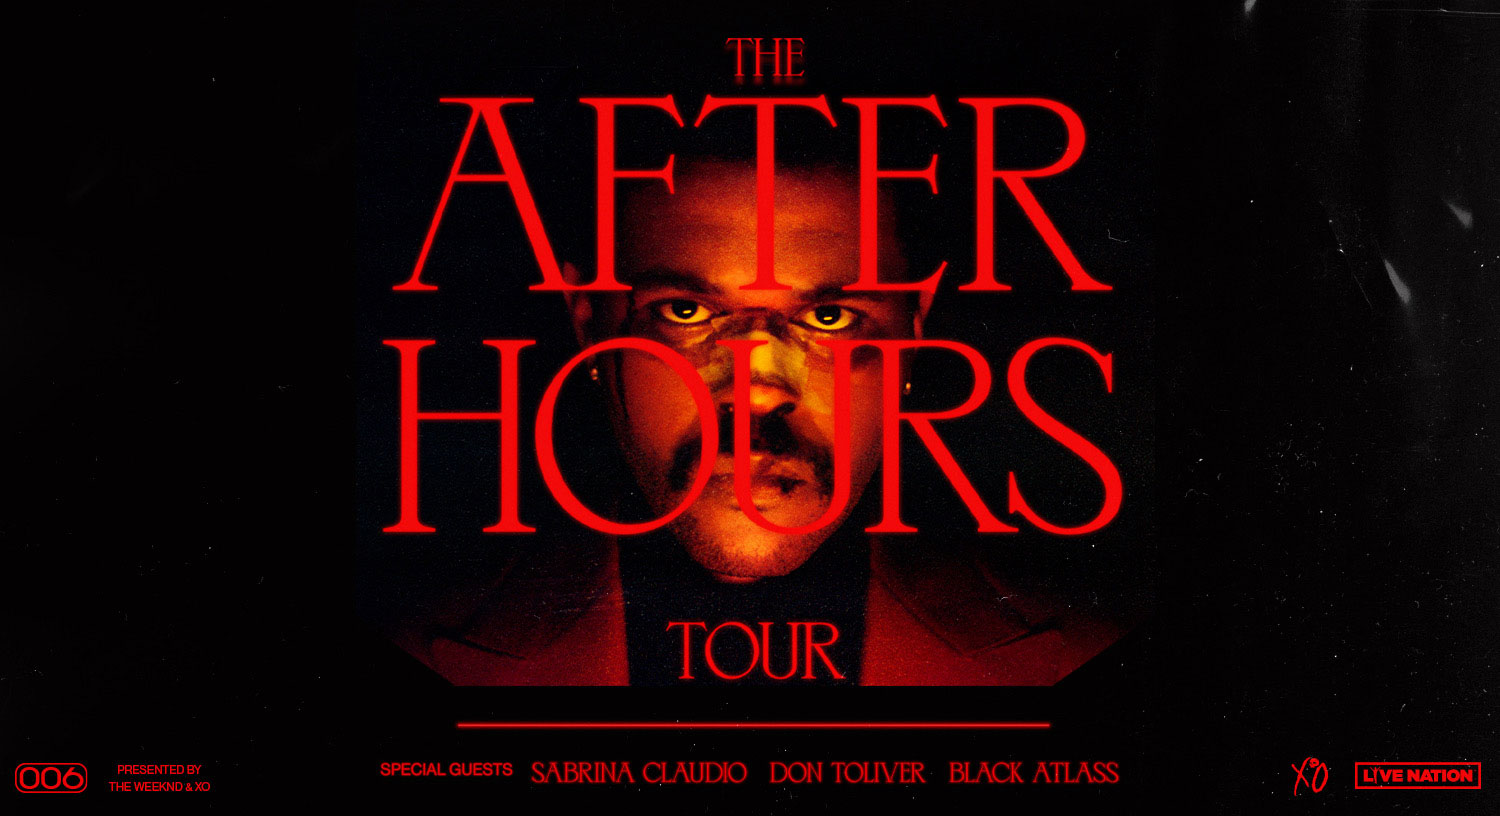 The After Hours Tour Presented by The Weeknd & XO.